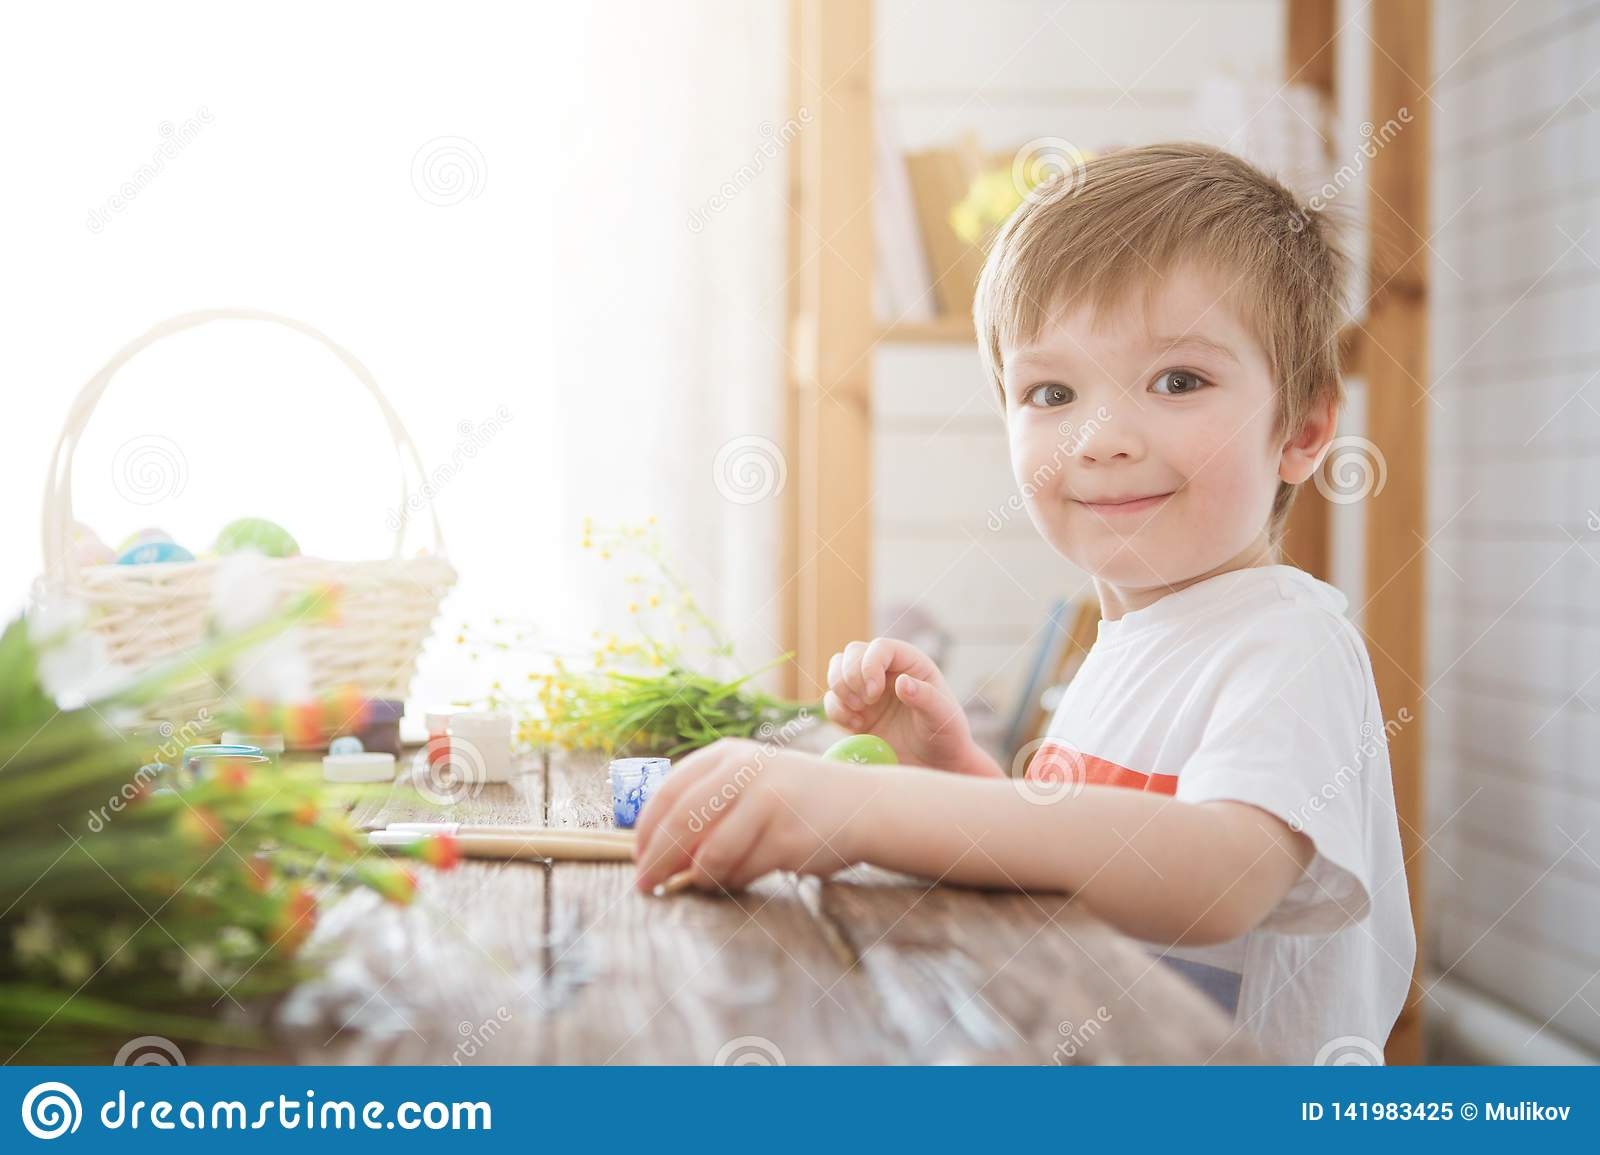 Boy decorate easter egg. A little boy painting and decorating Easter eggs. Portrait of cute boy 3 years old. He holds brush and